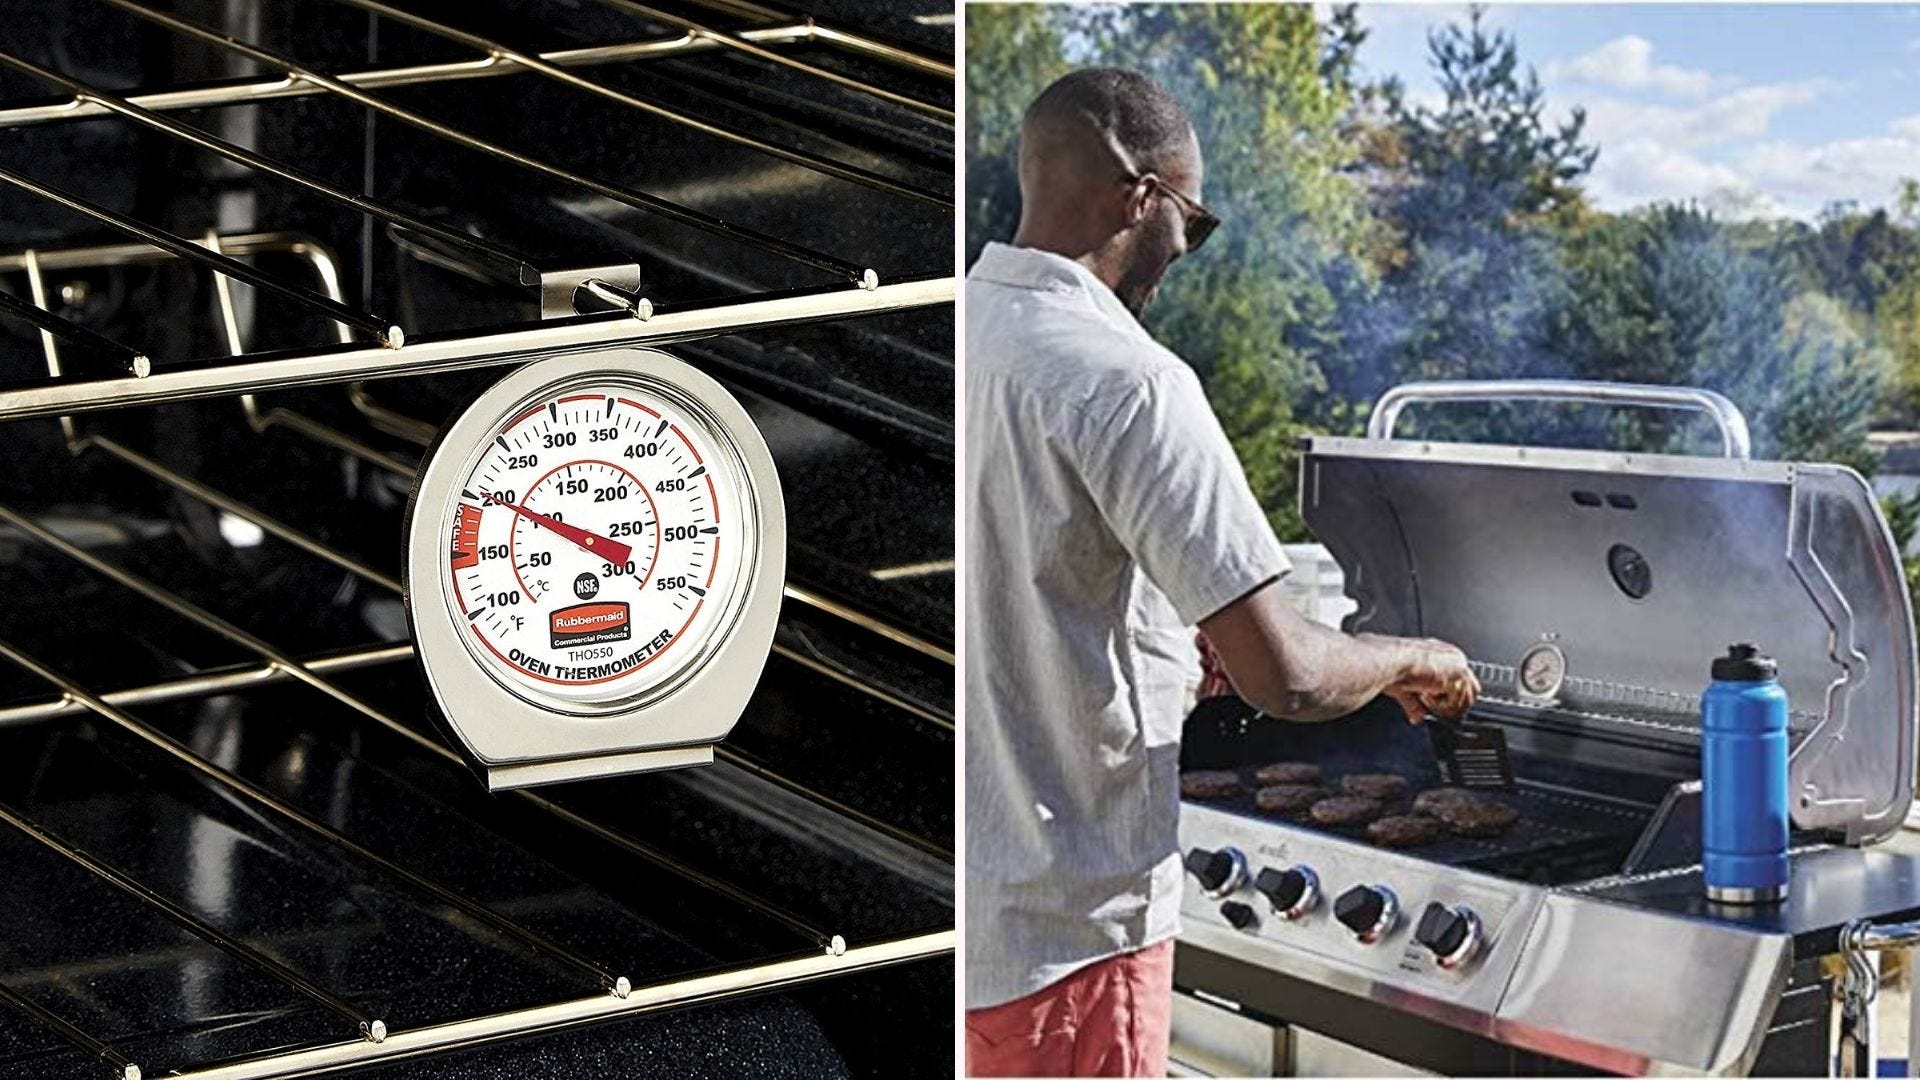 Two side by side images displaying a Rubbermaid grill thermometer. The left image is of the thermometer in an oven and the right image is of a male grilling burgers, with the thermometer displayed on the warming tray.